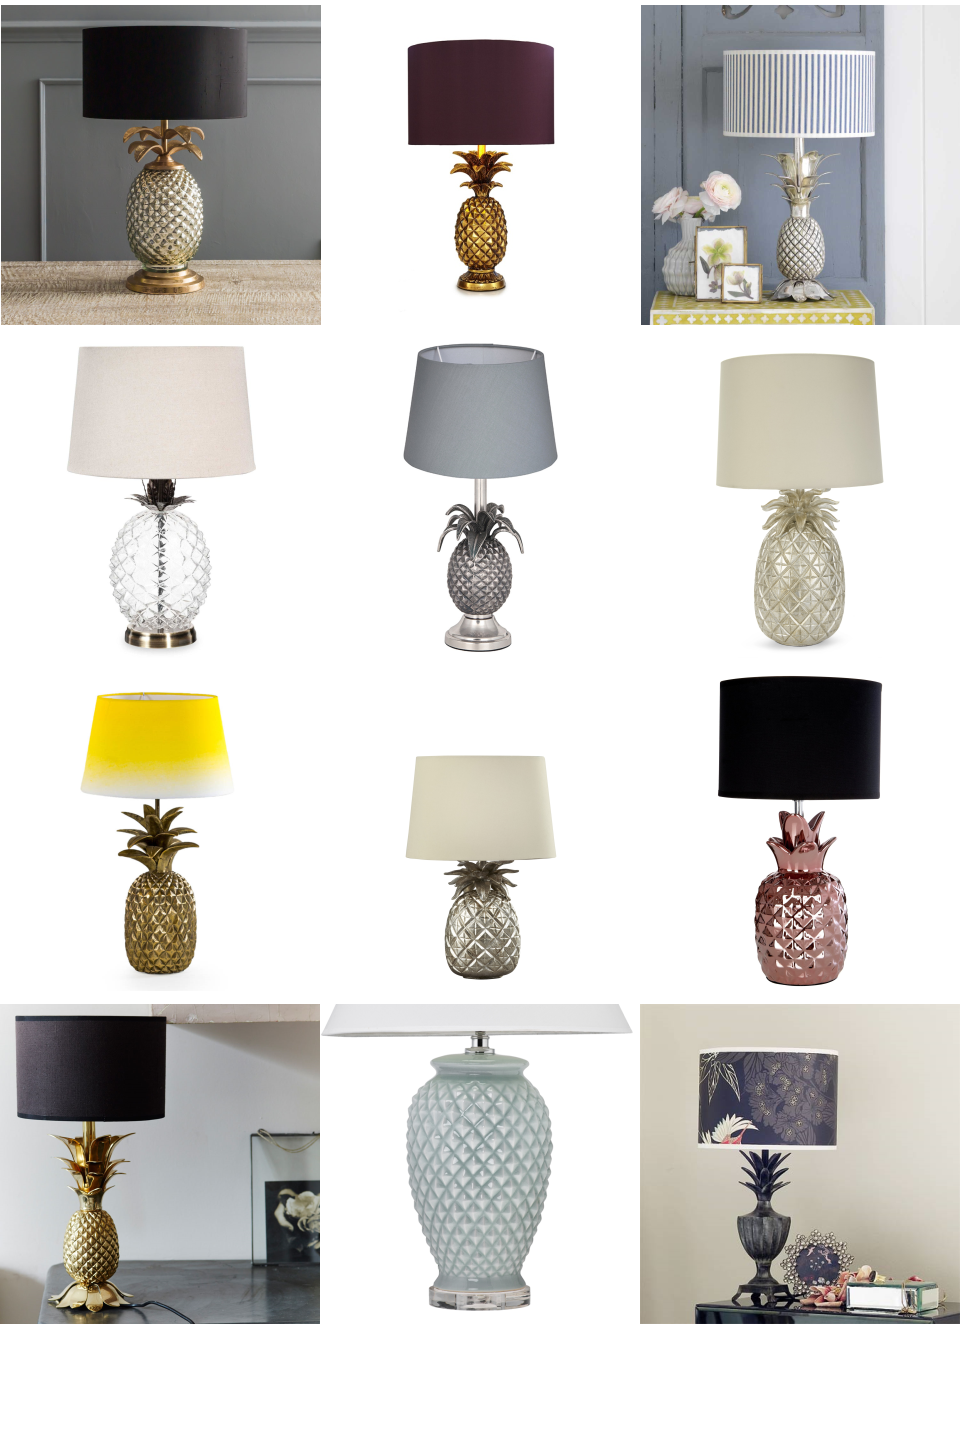 Pineapple Lamps Inspiration Board. Light up your home in style with these  beautiful pineapple table lamps. This selected range includes popular gold,